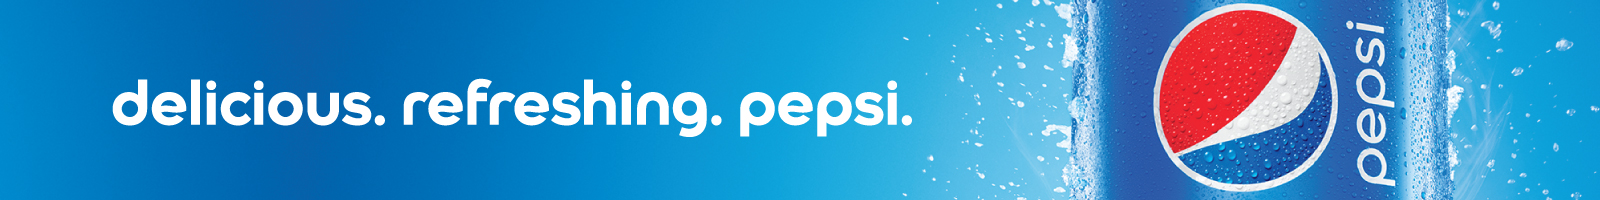 delicious refreshing pepsi ad